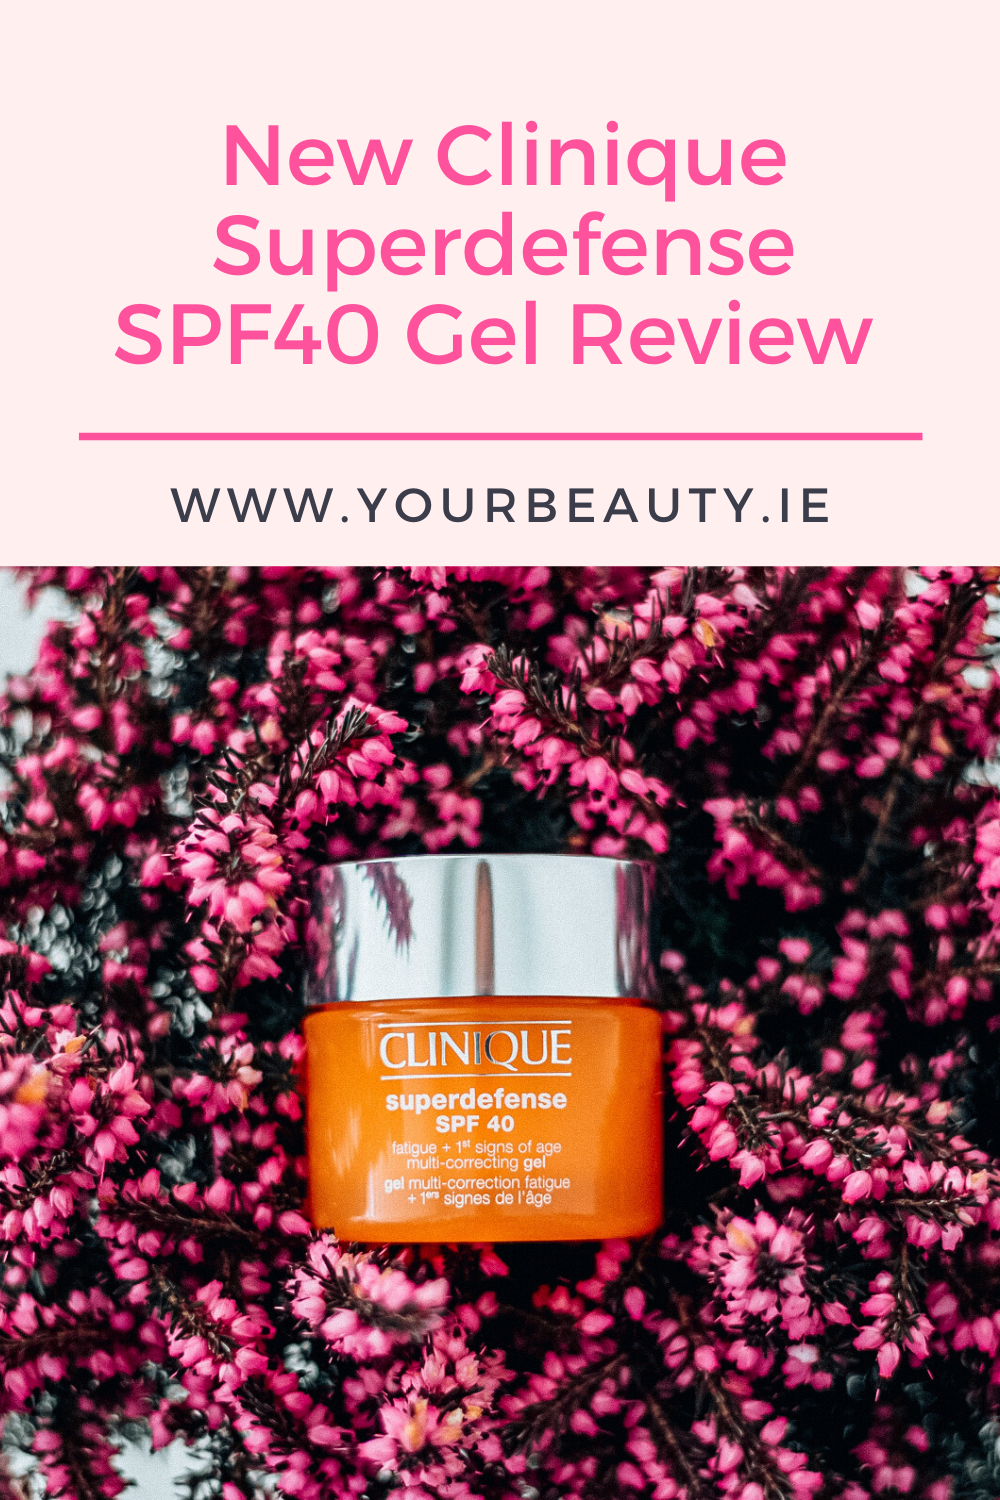 Clinique Superdefense SPF 40 Gel Review